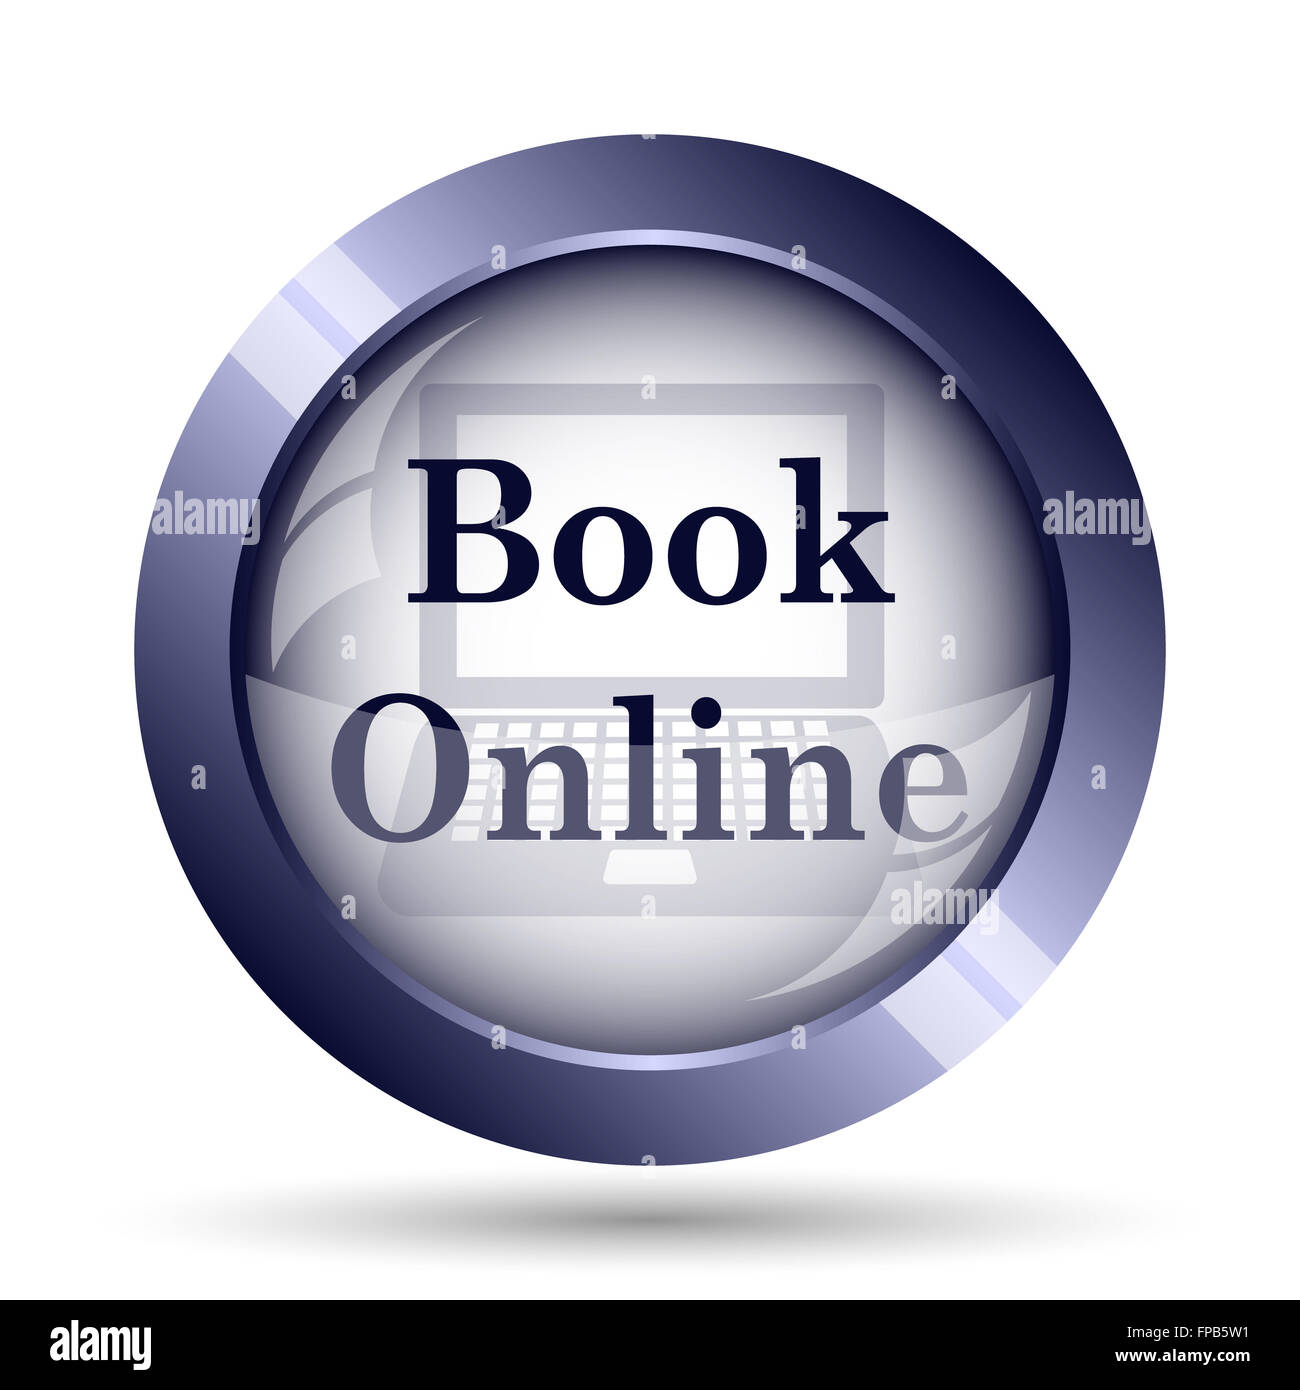 Book online icon. Internet button on white background. - Stock Image